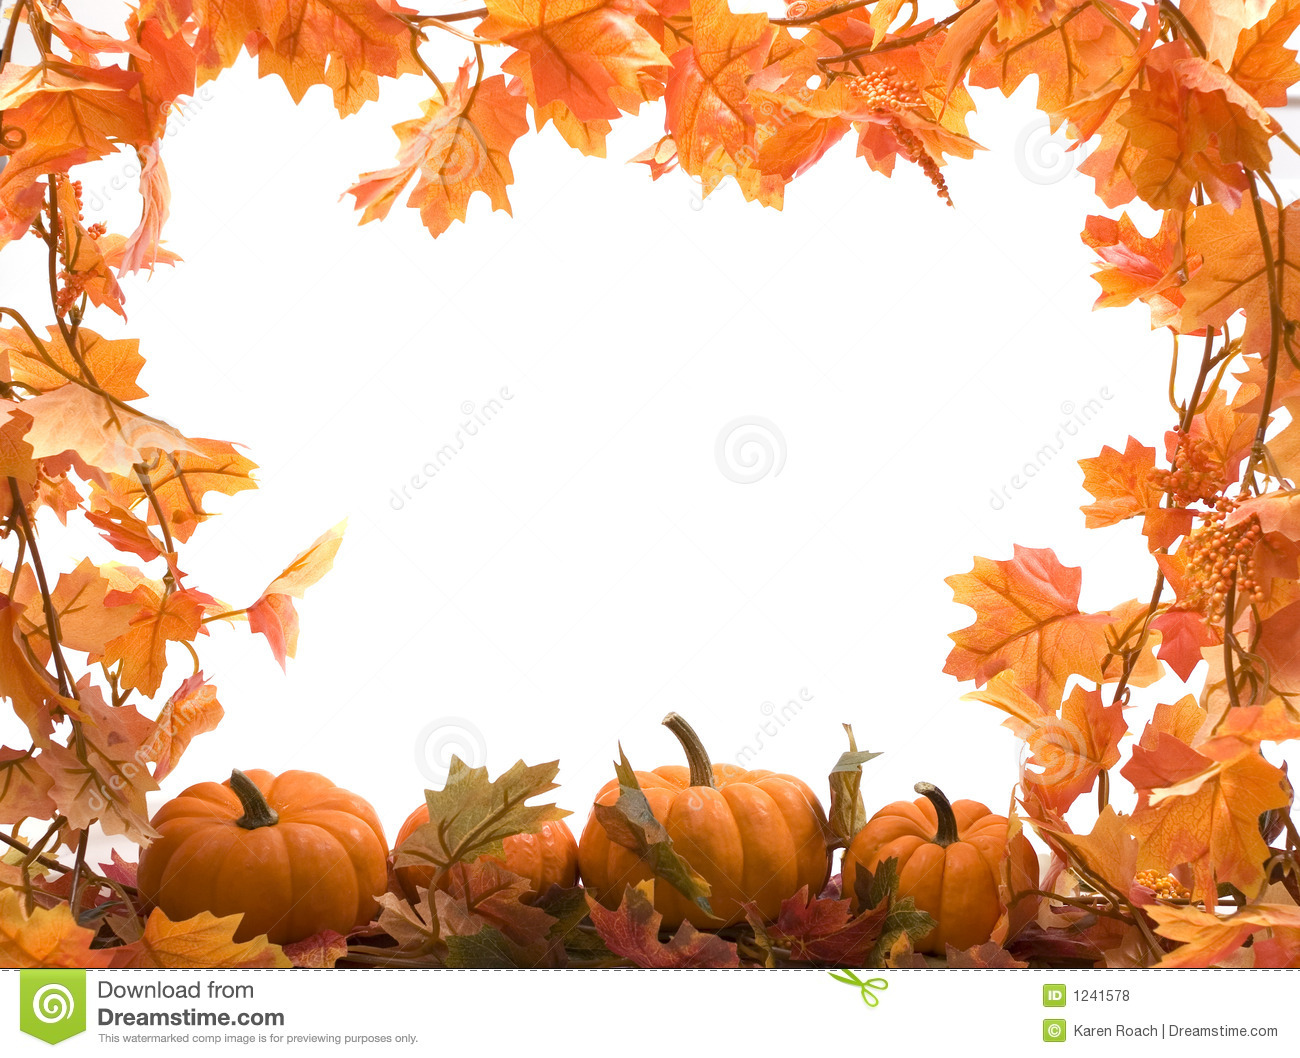 Pumpkins With Fall Leaves Stock Photo. Image Of Festive